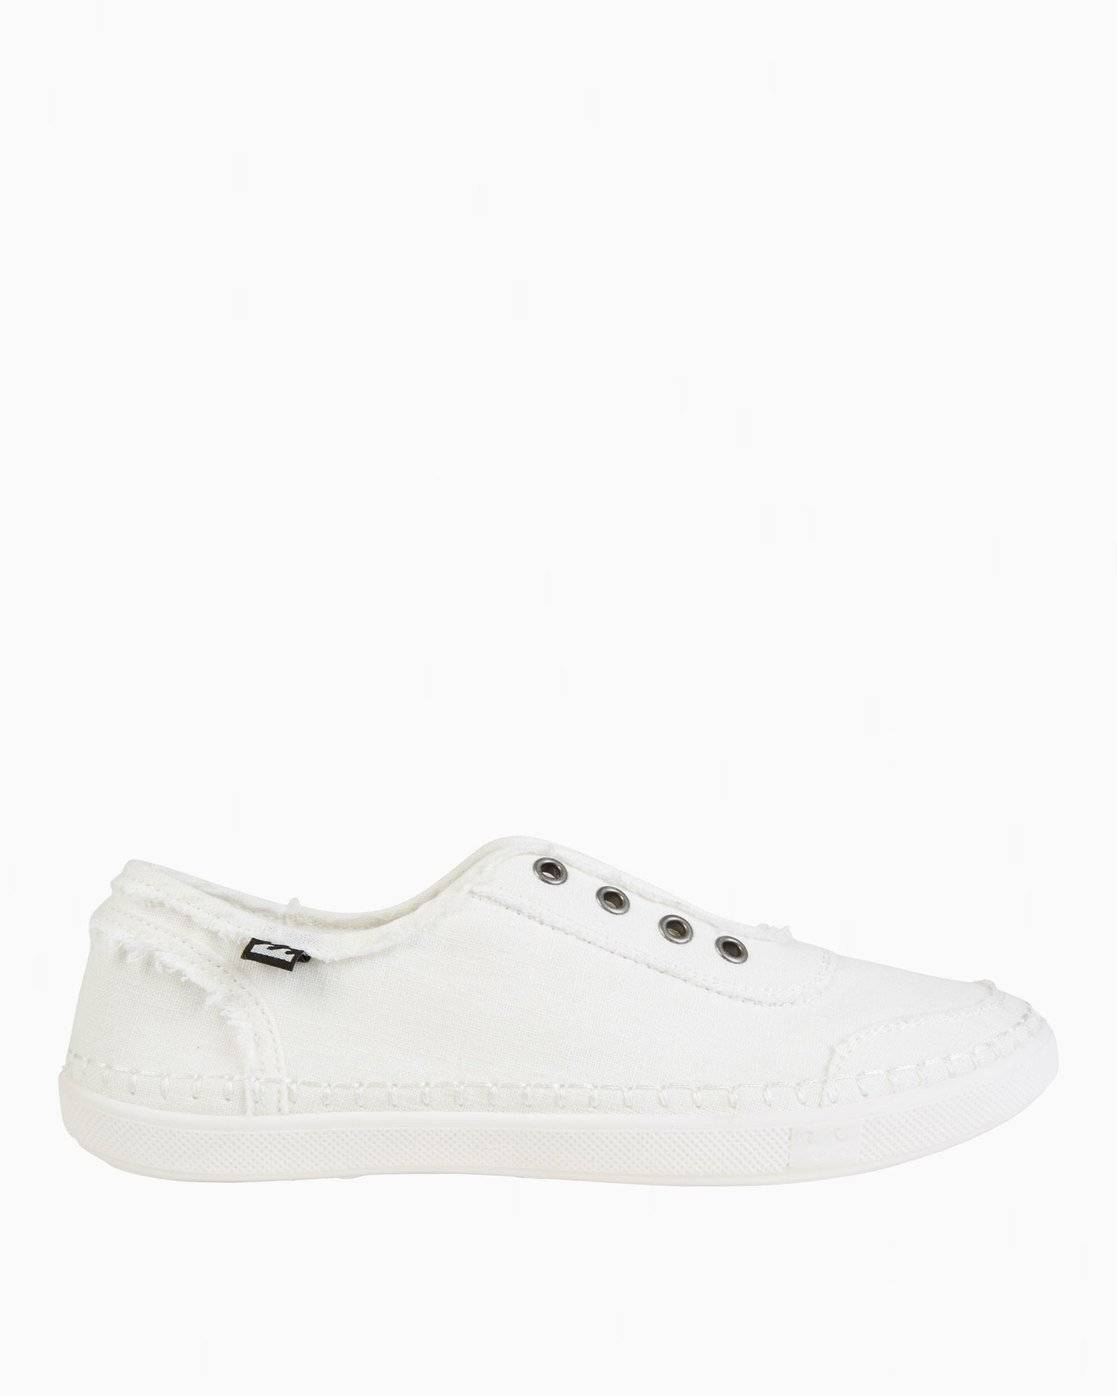 Billabong Cruiser Slip-On Shoes  - White - Size: 7.5